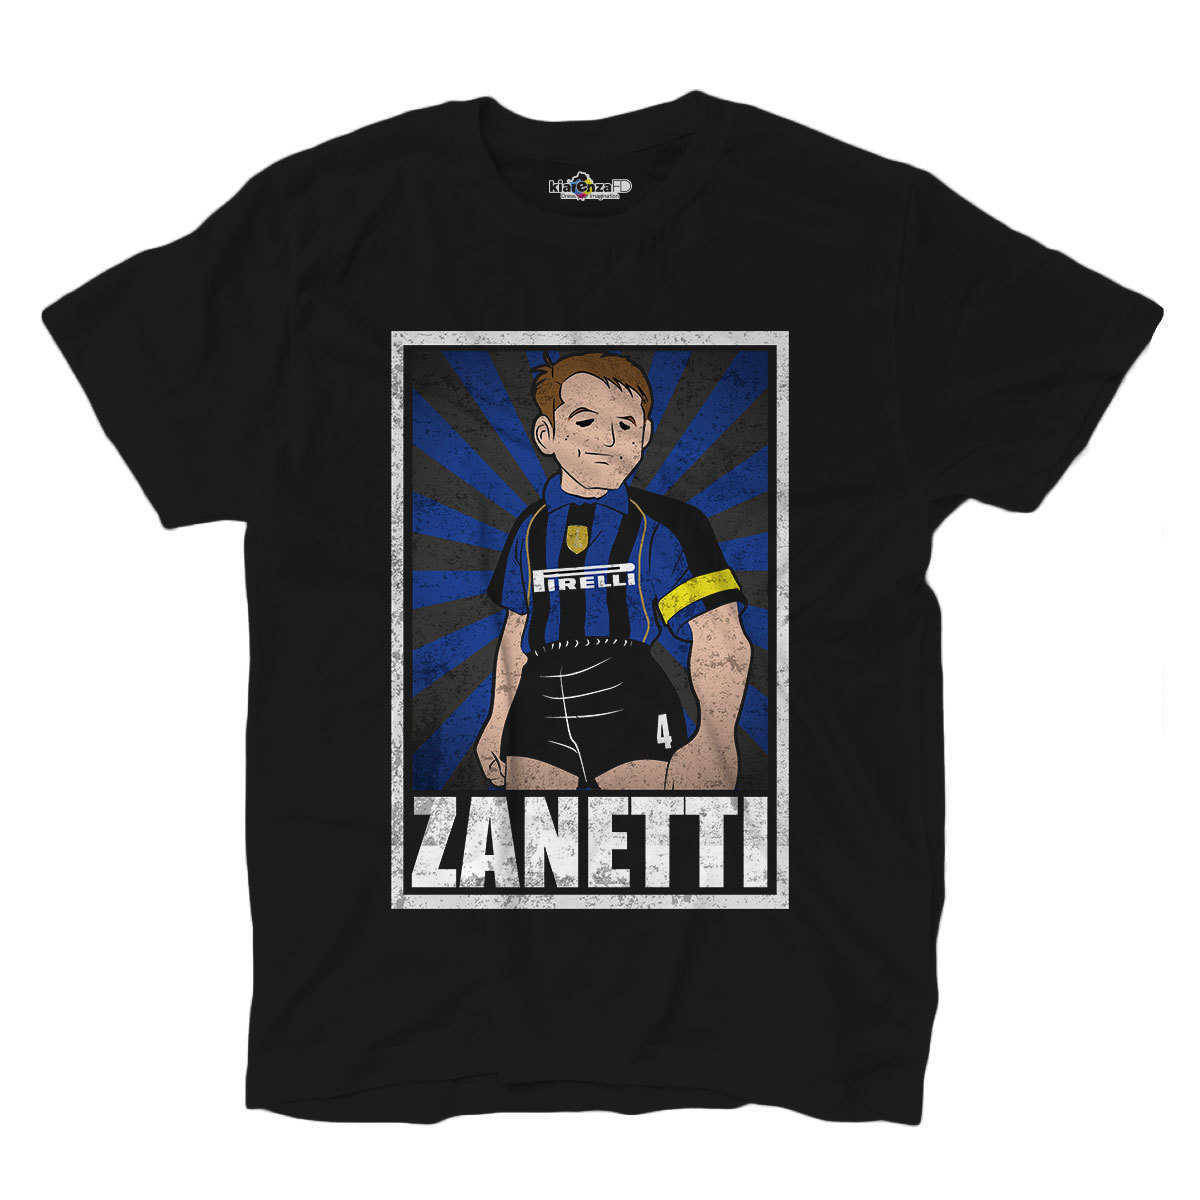 Football <font><b>T</b></font>-<font><b>shirt</b></font> <font><b>T</b></font> <font><b>Shirt</b></font> Vintage Zanetti <font><b>Inter</b></font> <font><b>Milan</b></font> Legend Spoof Holly and Benji Grunge S image